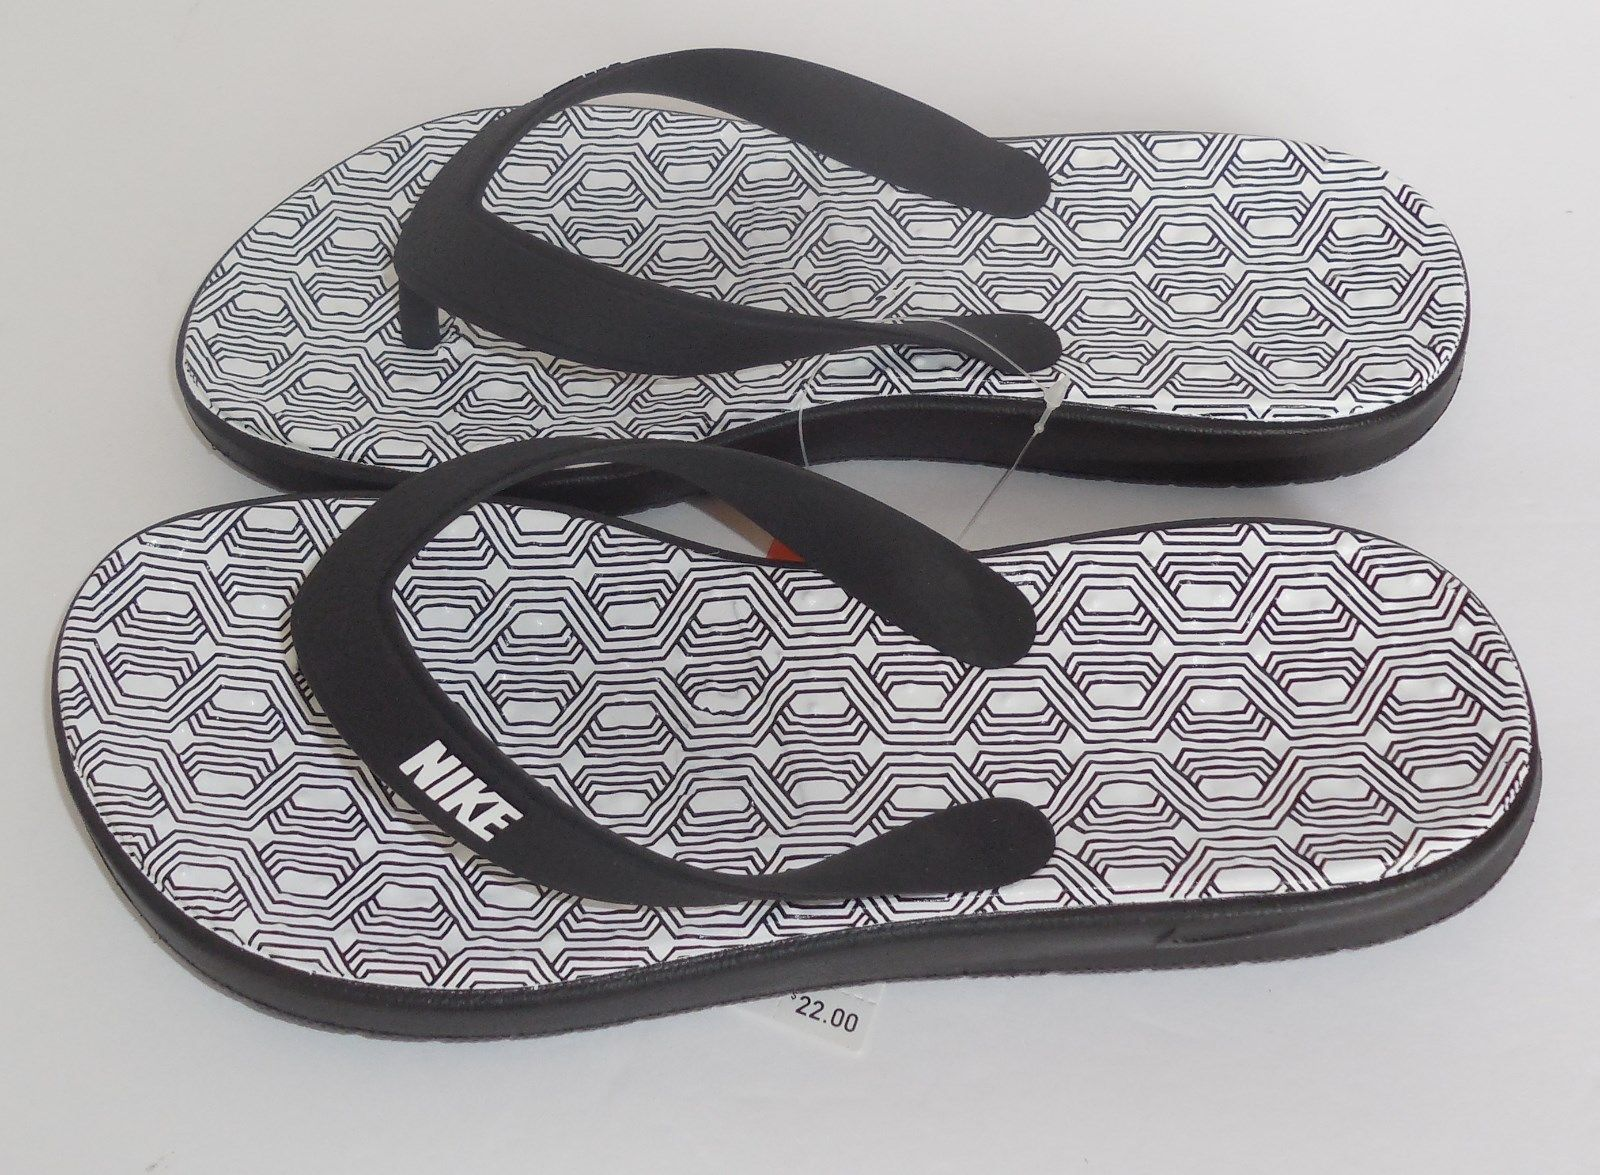 a81187579639 Nike Womens 6 Solay Thong Flip Flops Print 882696-003 Black White New  Sandals